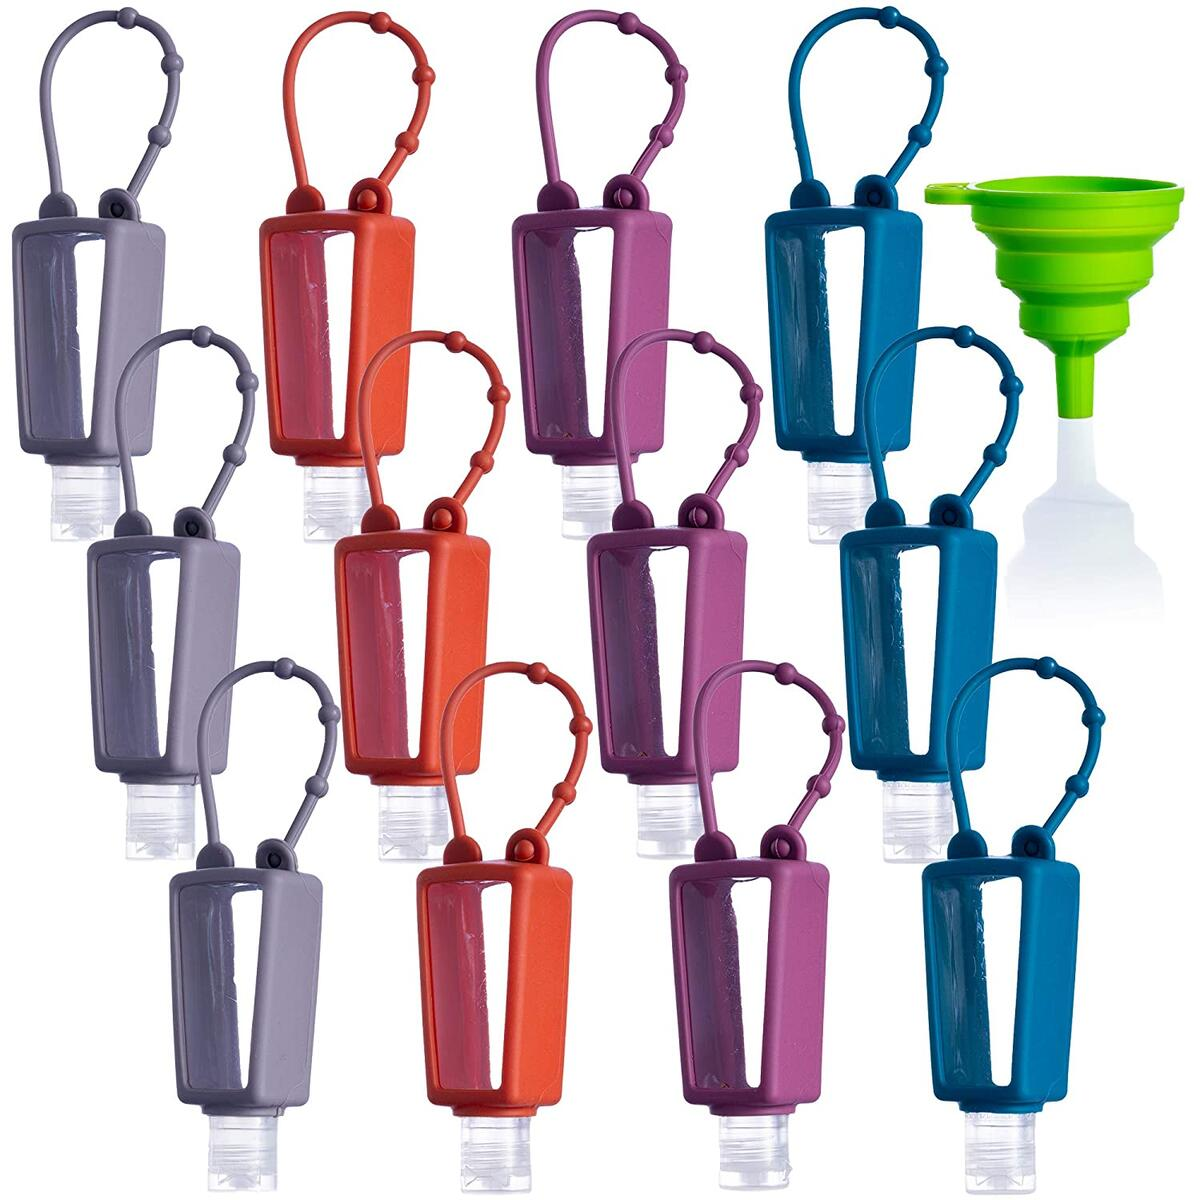 12 PACK Mixed EMPTY Refillable Mini Travel Hand Sanitizer Holder Keychain Squeeze Bottles (30mL 1fl oz)